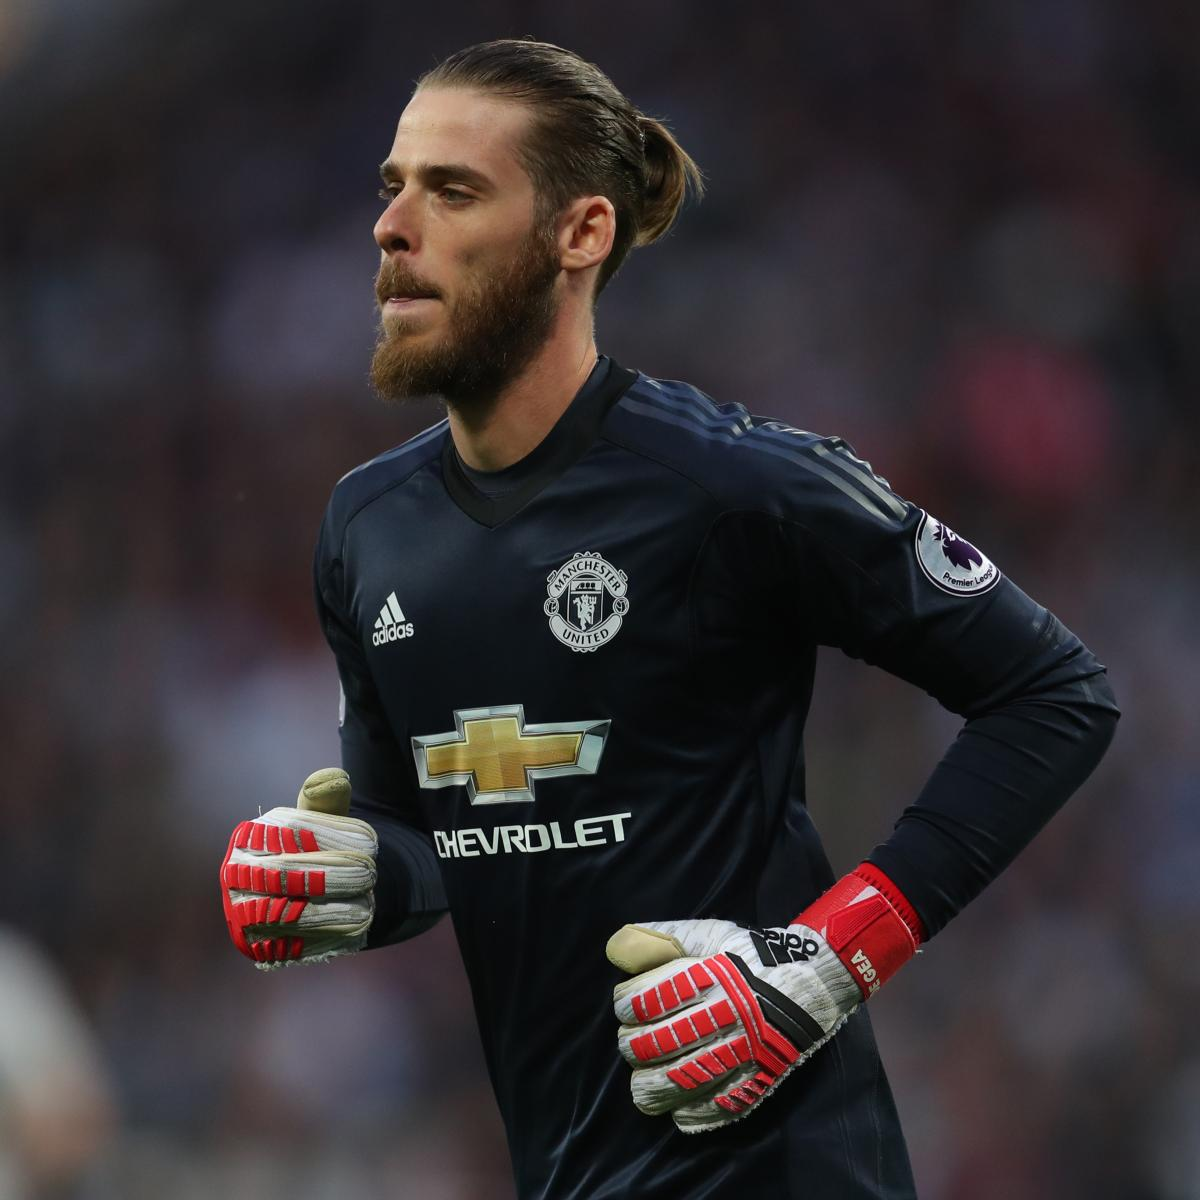 Real Madrid Reportedly Believe They Can Sign David De Gea with £100M Bid